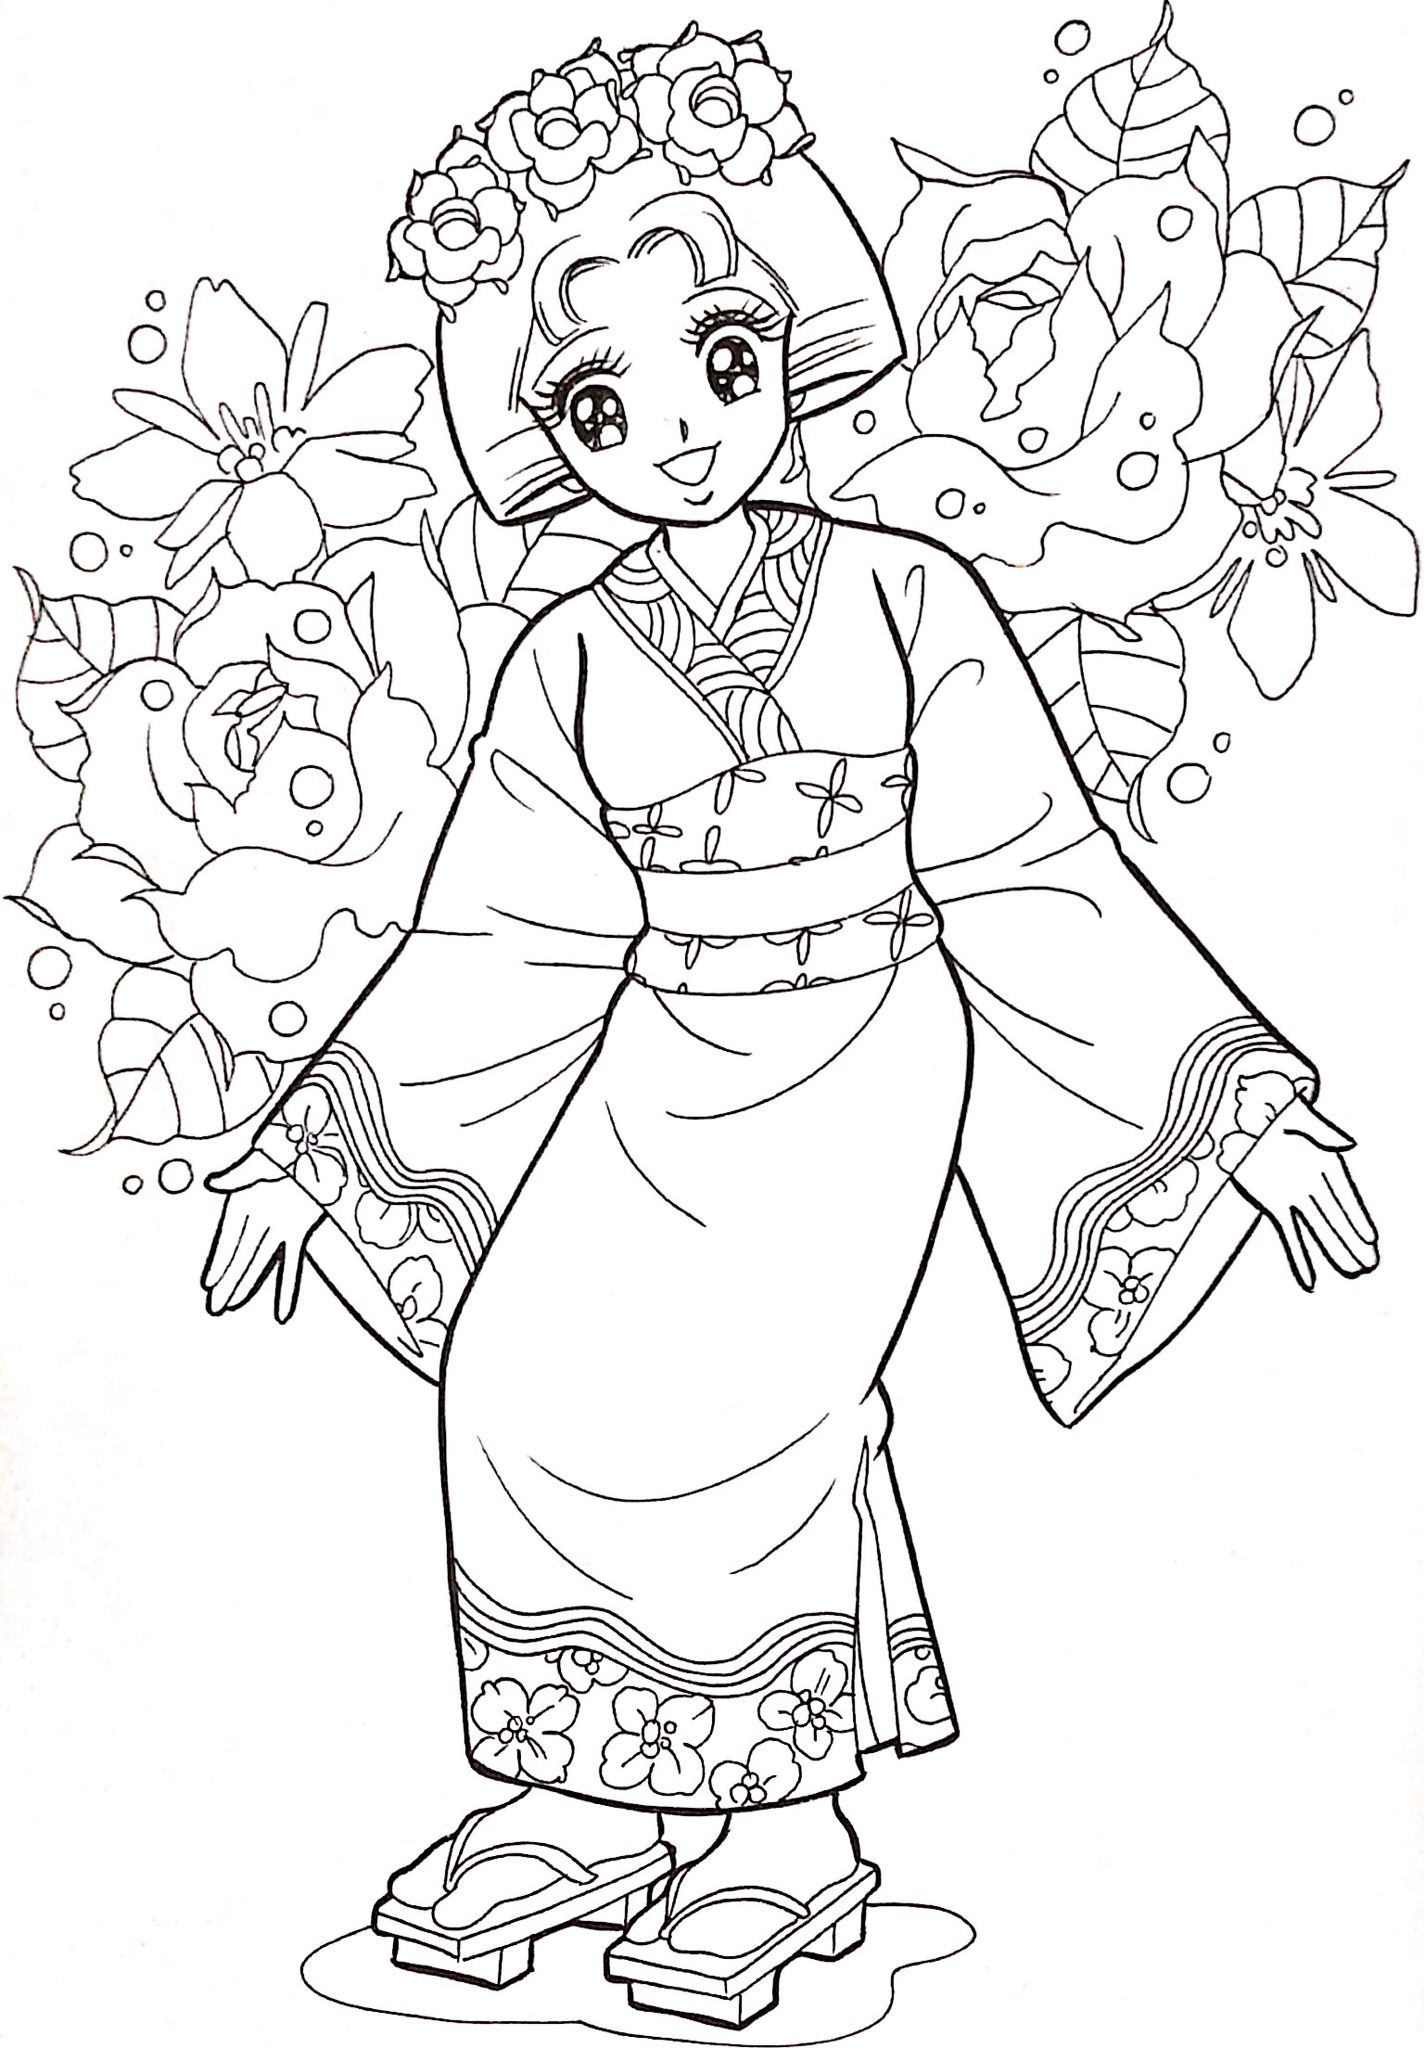 Coloring Coloring Books Princess Coloring Pages Coloring Pages